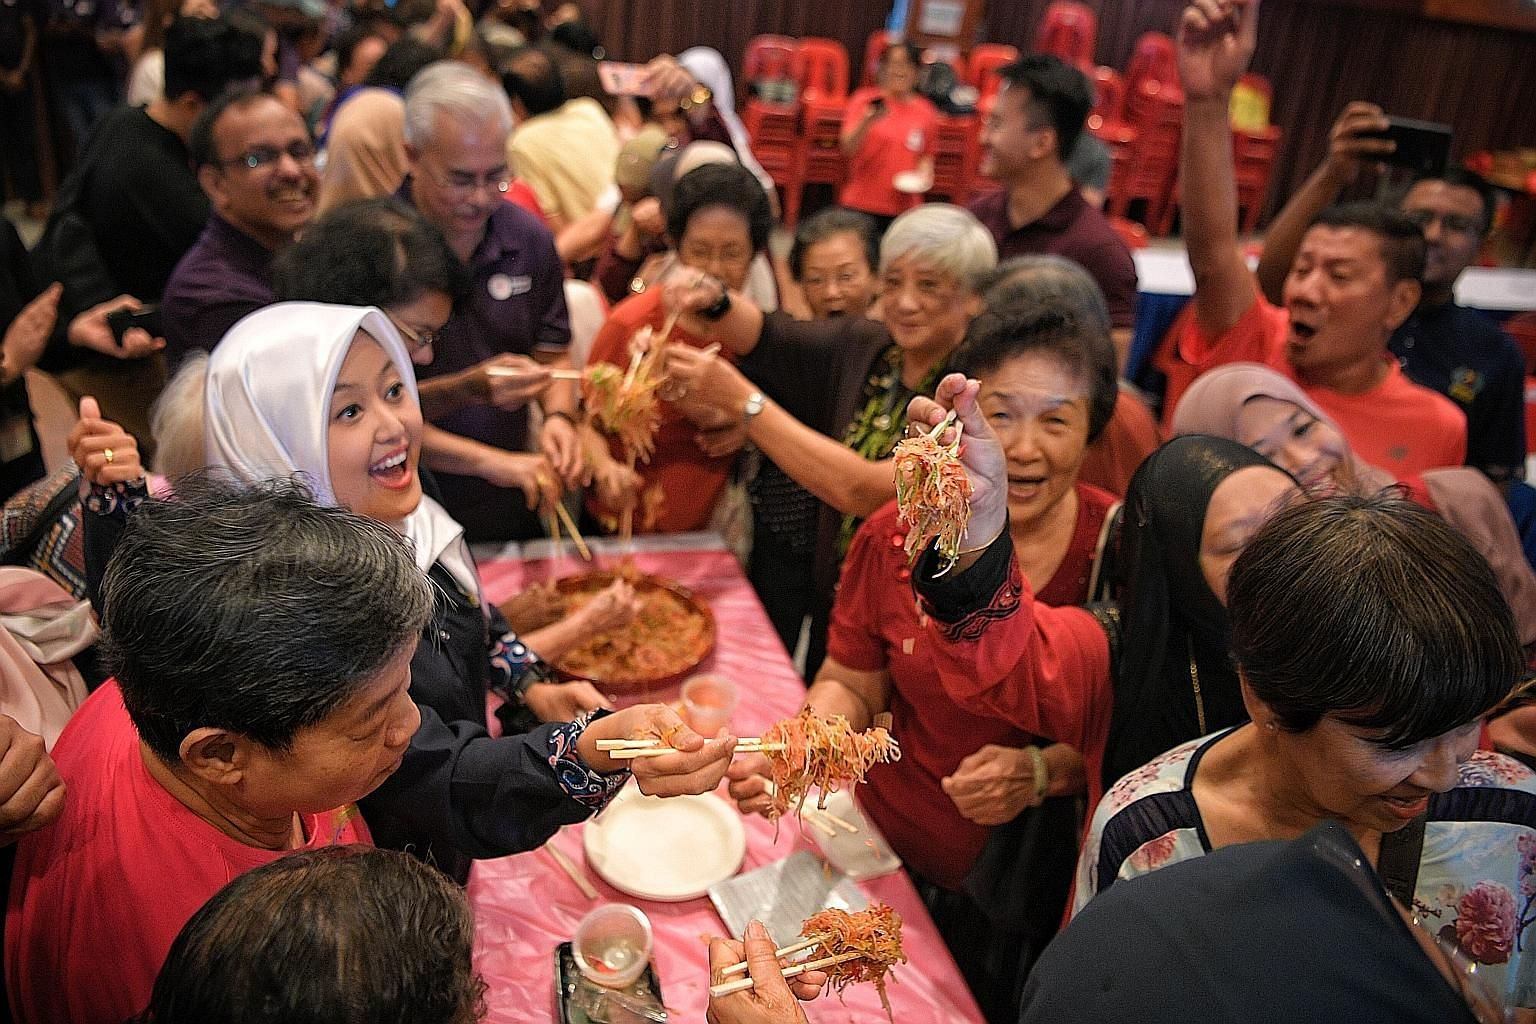 Ms Rahayu Mahzam, MP for Jurong GRC and an adviser to the PA Mesra youth sub-committee, joining in the lo hei session with seniors from Thye Hua Kwan Social Service Hub in Bukit Batok East and the Concern and Care Society during the event at Bukit Ba